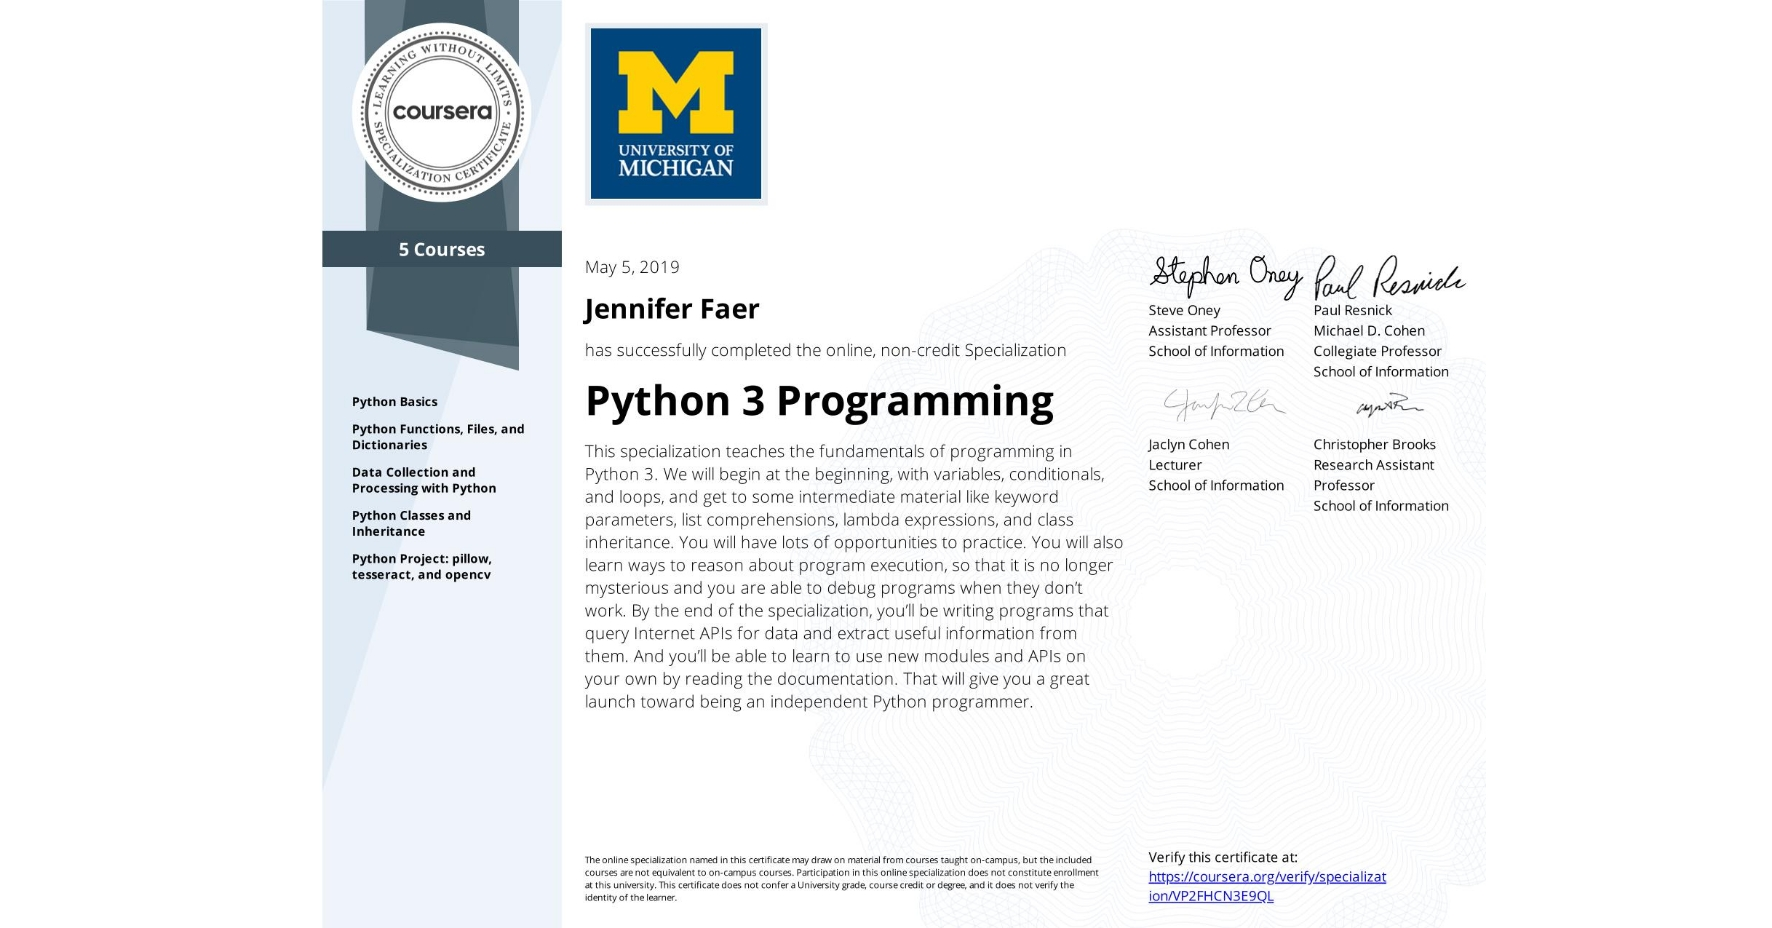 View certificate for Jennifer Faer, Python 3 Programming, offered through Coursera. This specialization teaches the fundamentals of programming in Python 3. We will begin at the beginning, with variables, conditionals, and loops, and get to some intermediate material like keyword parameters, list comprehensions, lambda expressions, and class inheritance.  You will have lots of opportunities to practice. You will also learn ways to reason about program execution, so that it is no longer mysterious and you are able to debug programs when they don't work.  By the end of the specialization, you'll be writing programs that query Internet APIs for data and extract useful information from them. And you'll be able to learn to use new modules and APIs on your own by reading the documentation. That will give you a great launch toward being an independent Python programmer.